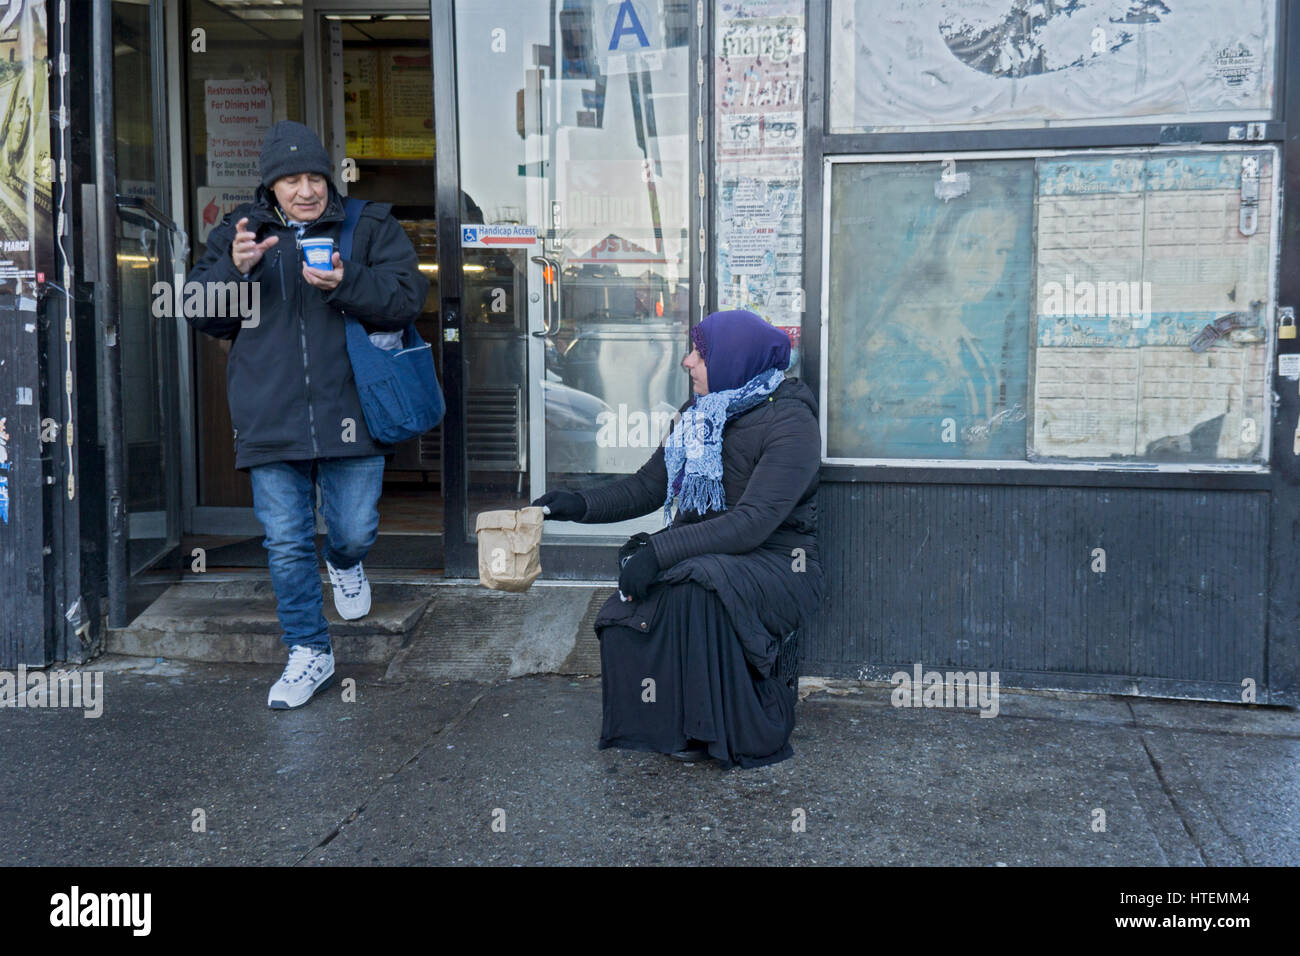 A poor Muslim woman asking for donations outside a food shop in Jackson Heights, Queens, New York City. - Stock Image